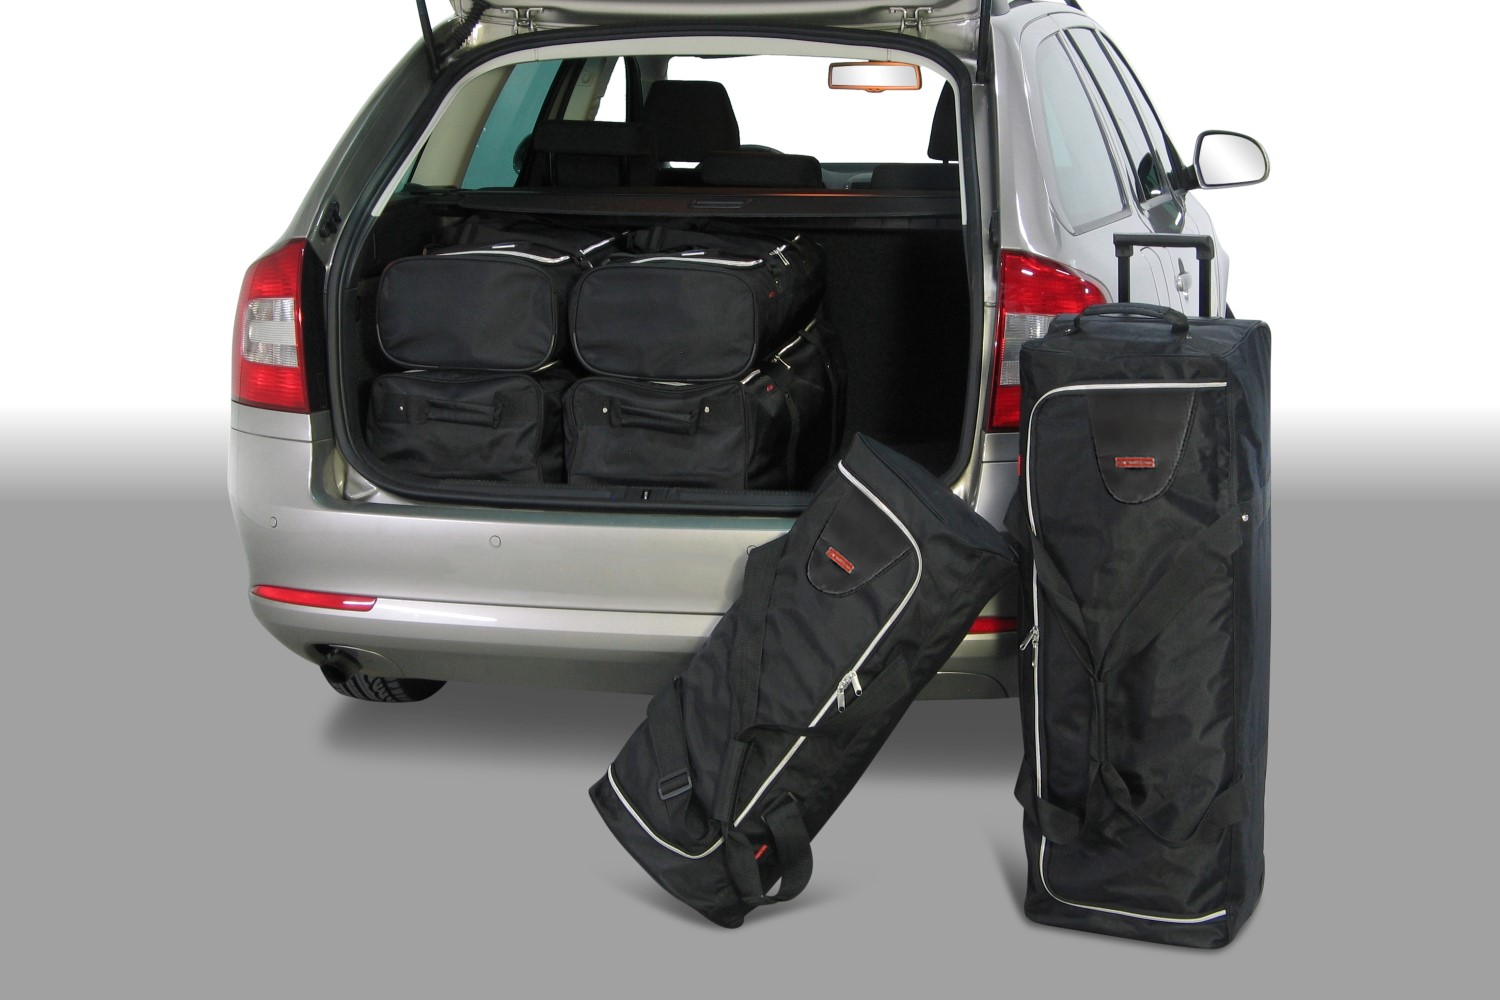 Skoda Octavia II (1Z) Combi 2004-2013 Car-Bags.com travel bag set (1)